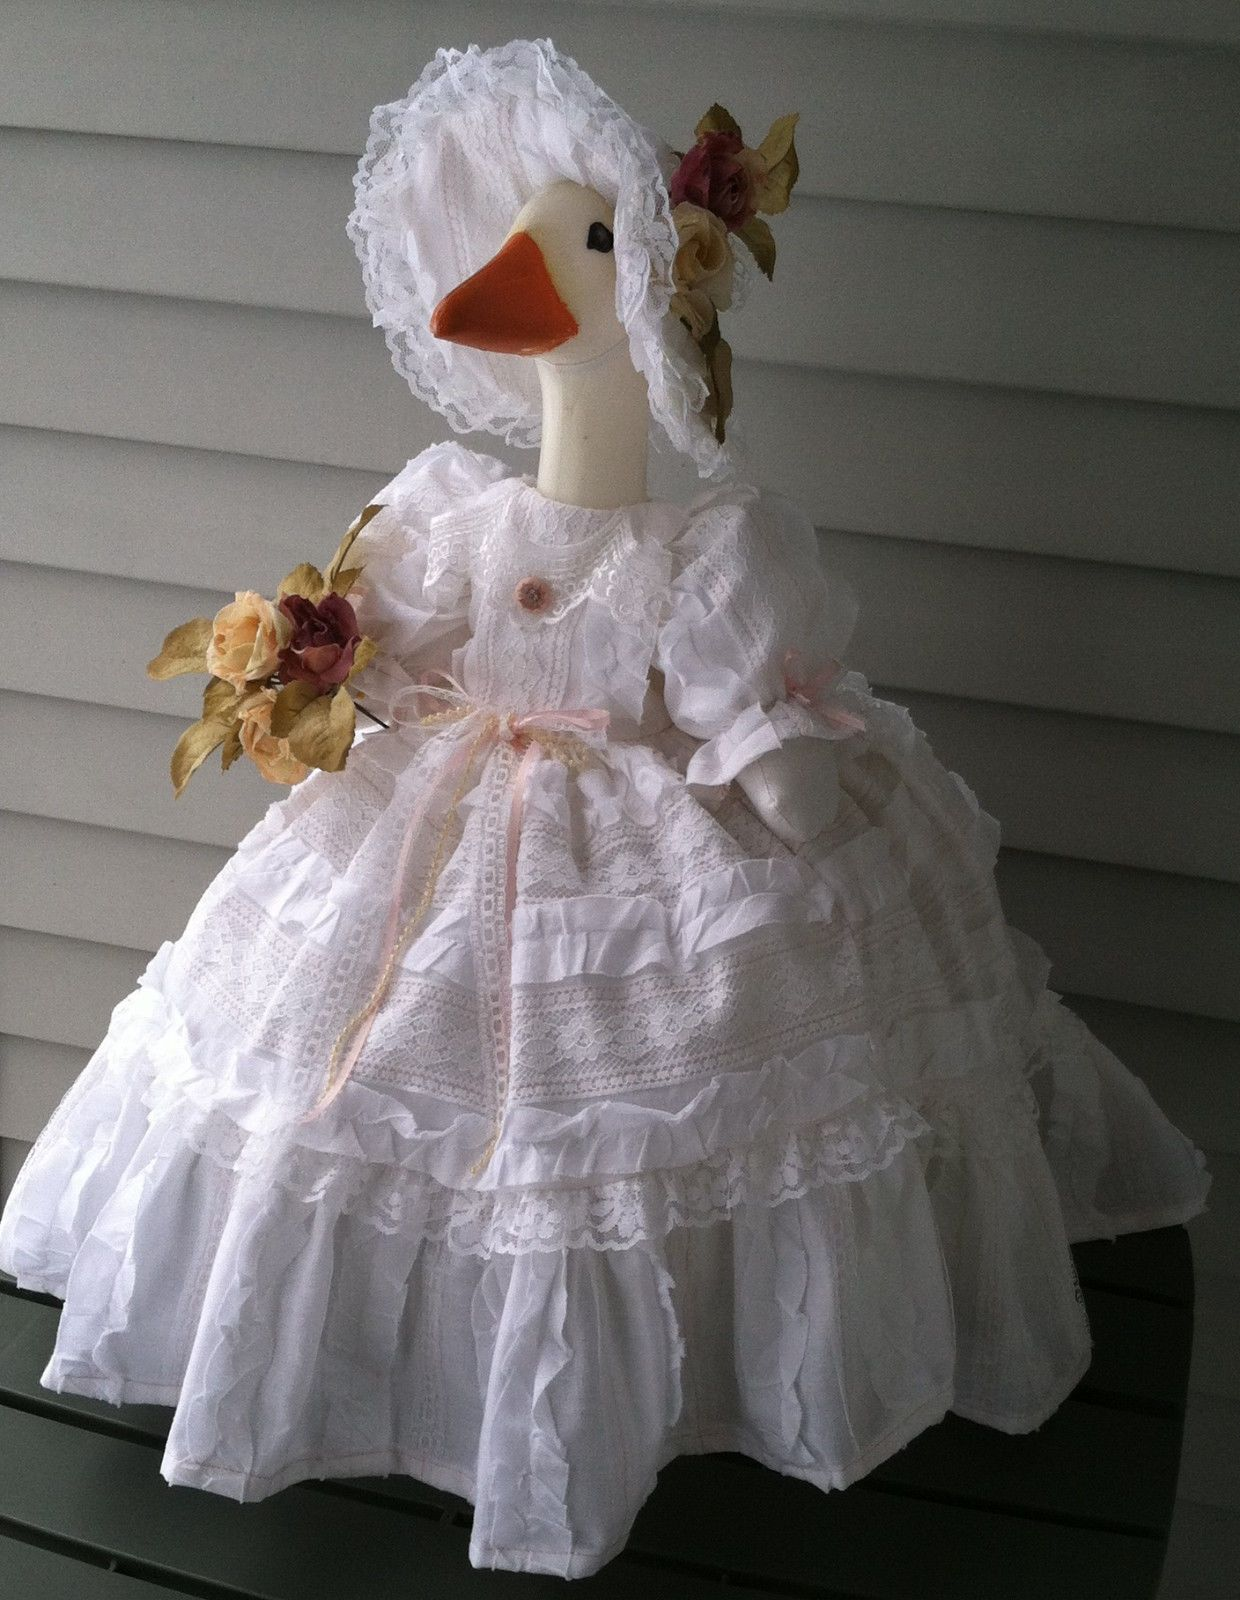 Goose Clothes ️ Shabby Chic ️ Outfit By Linda